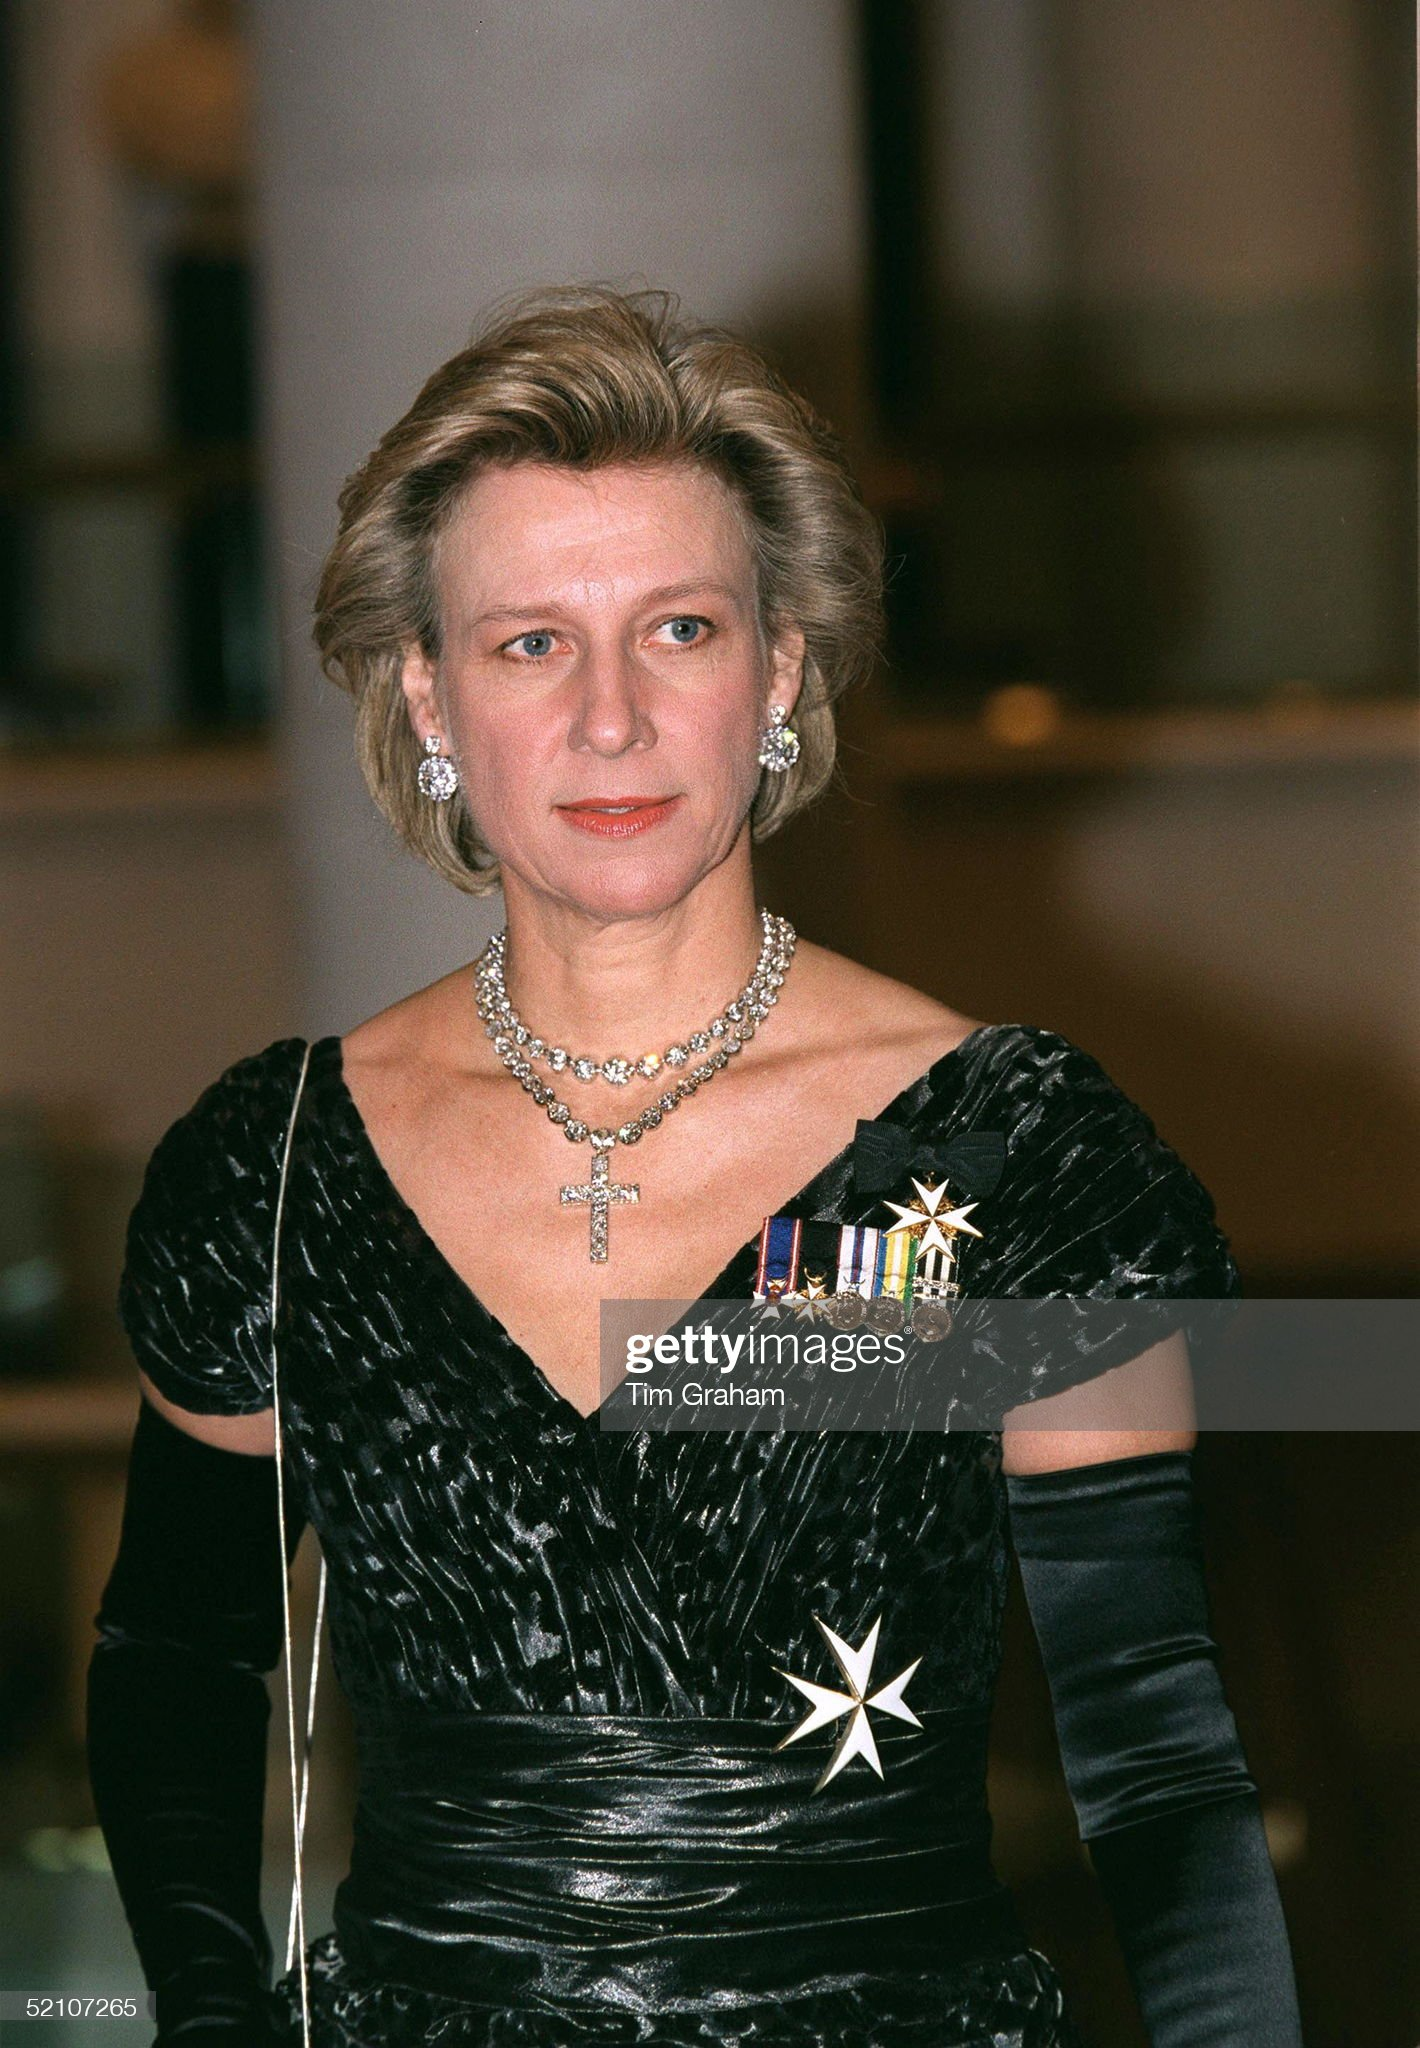 Duchess Of Gloucester Guildhall : News Photo